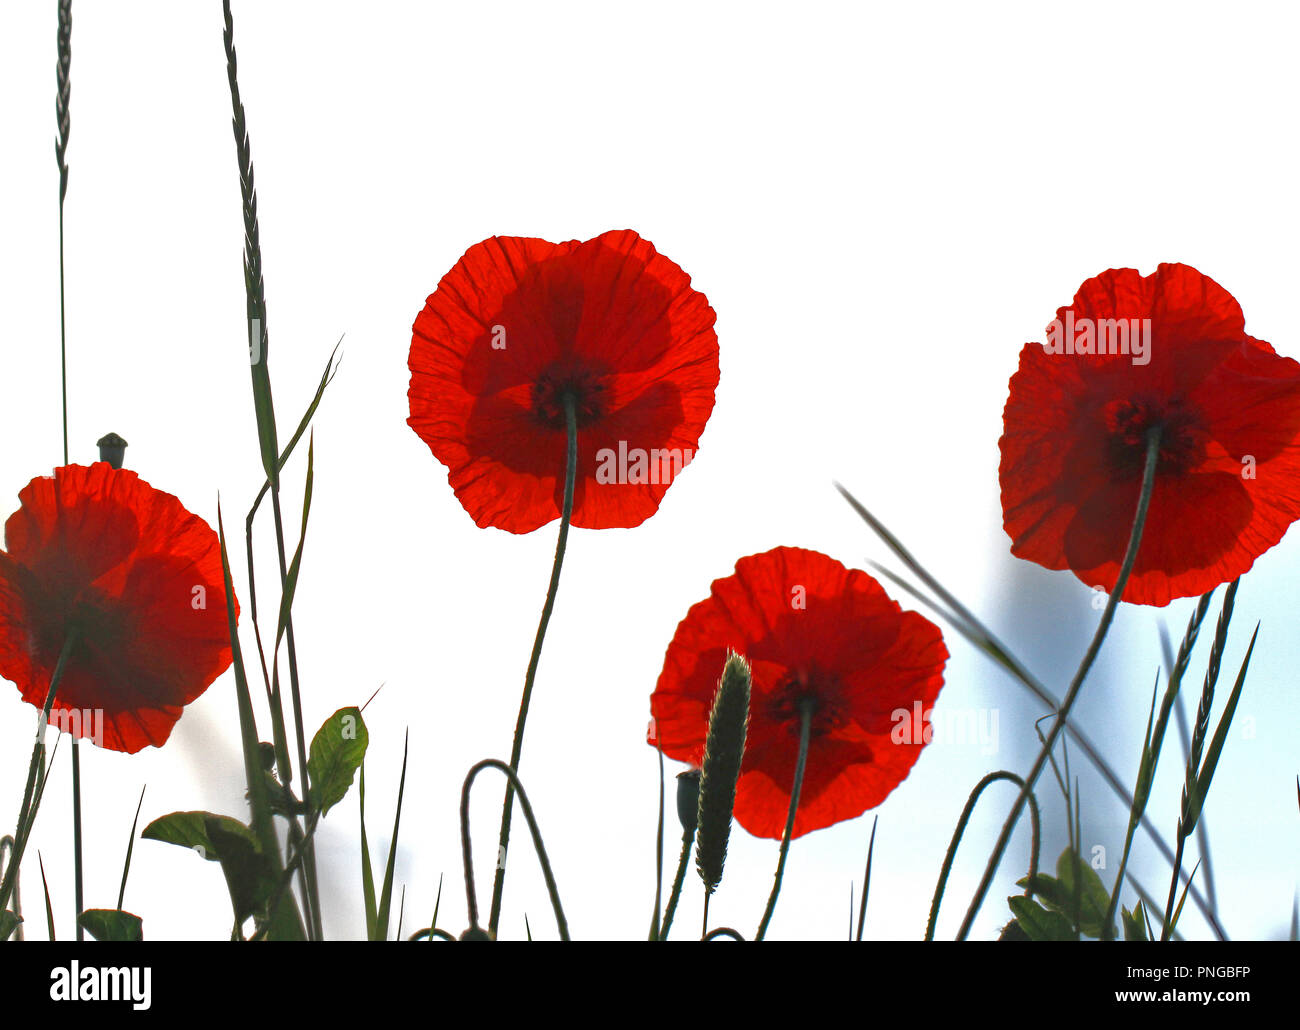 Poppy flowers or papaver rhoeas with light behind in Italy remembering 1918 the Flanders Fields poem and 1944 The Red Poppies on Monte Cassino song - Stock Image